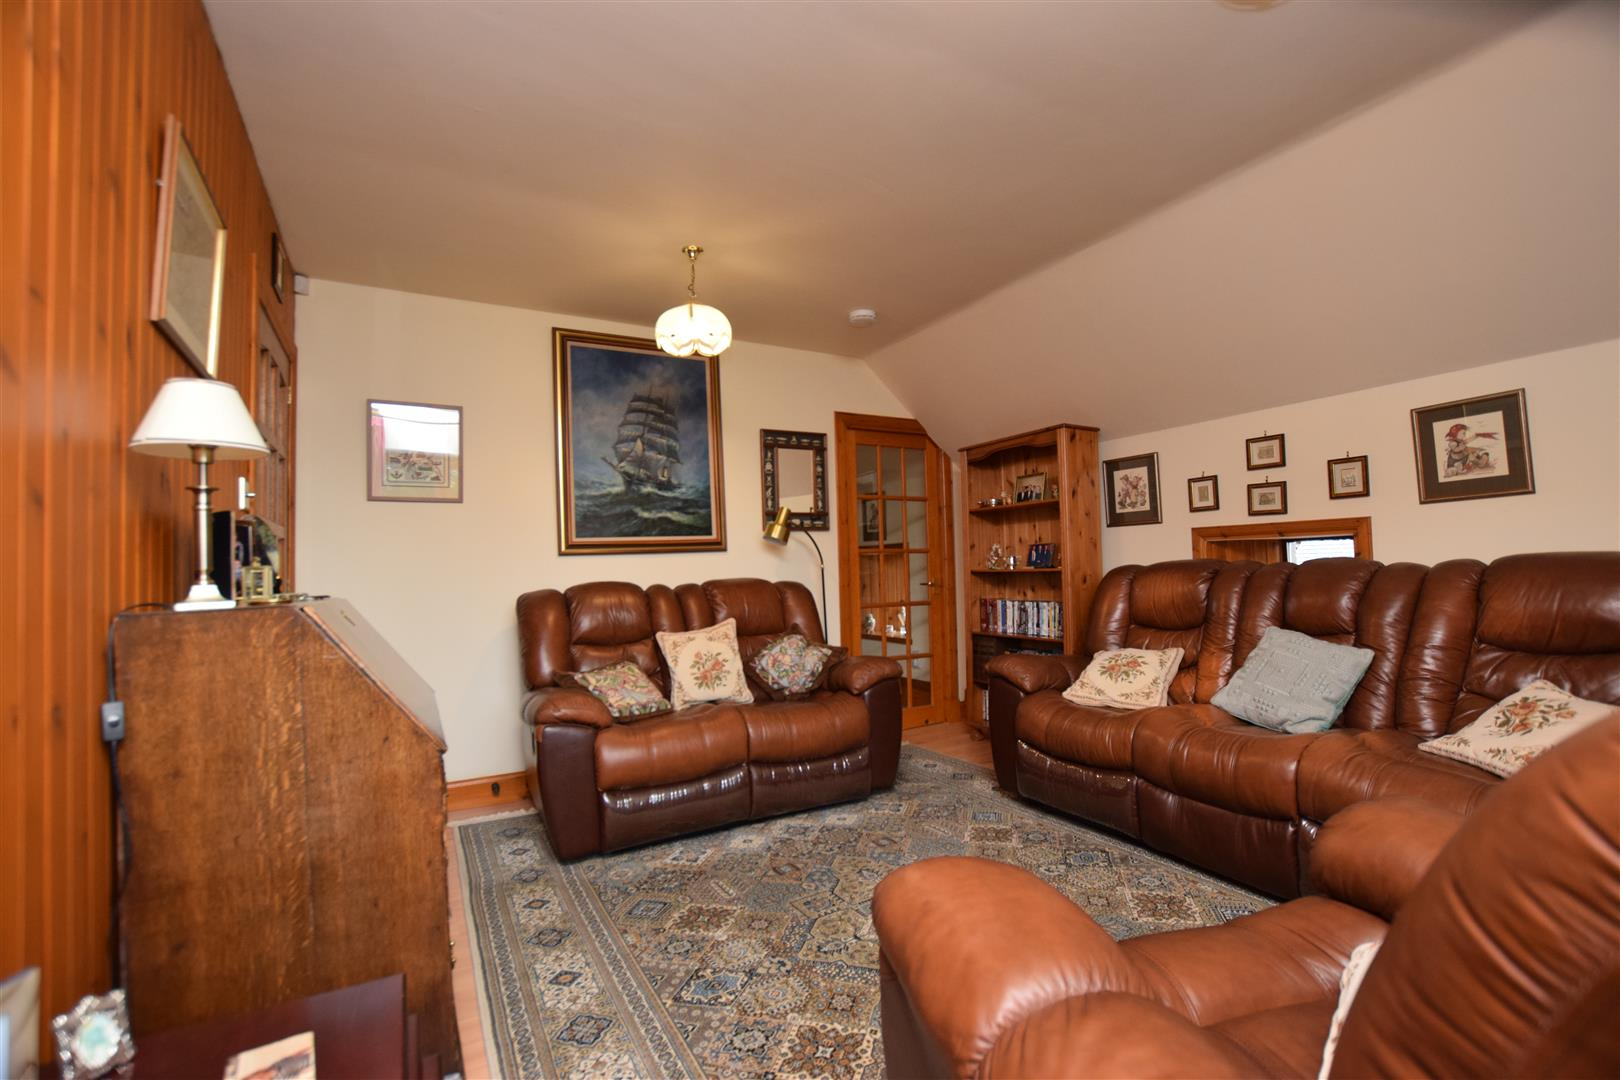 Lochview, Kinloch, Blairgowrie, Perthshire, PH10 6SD, UK